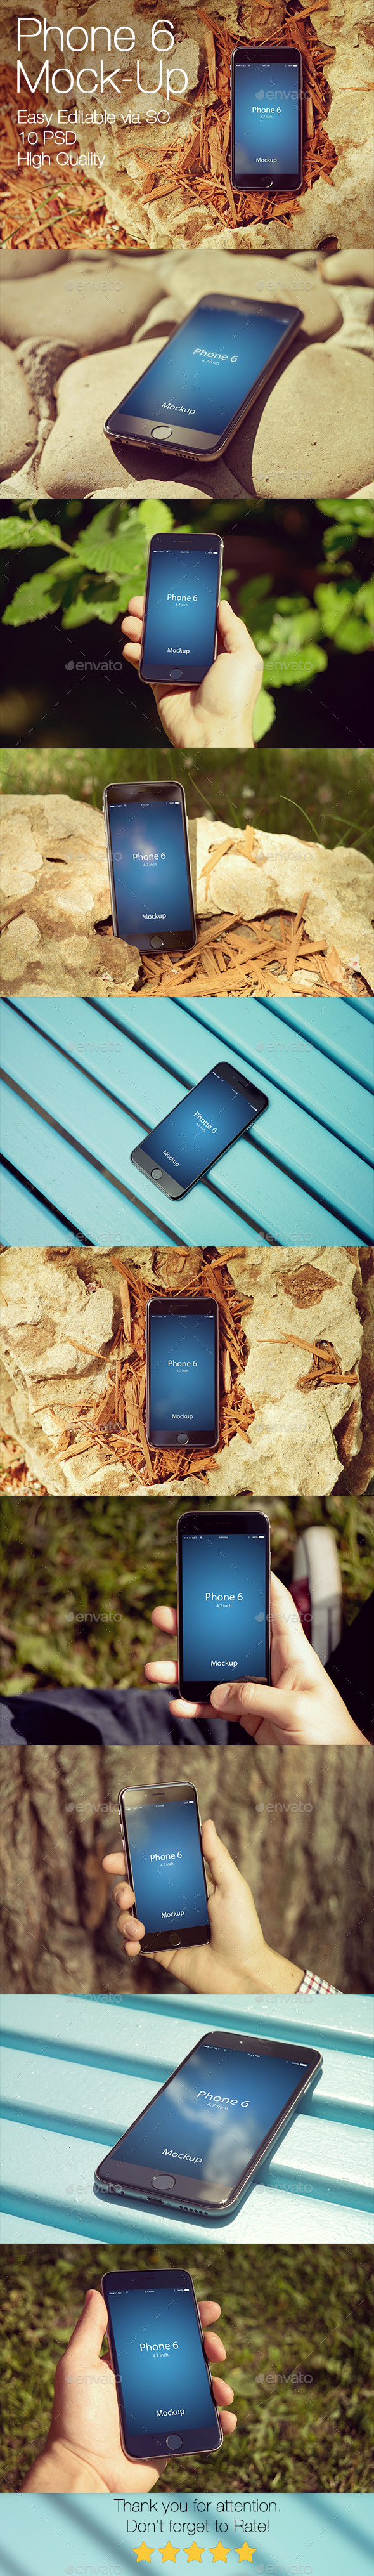 GraphicRiver Phone 6 Mockup v3 11547757